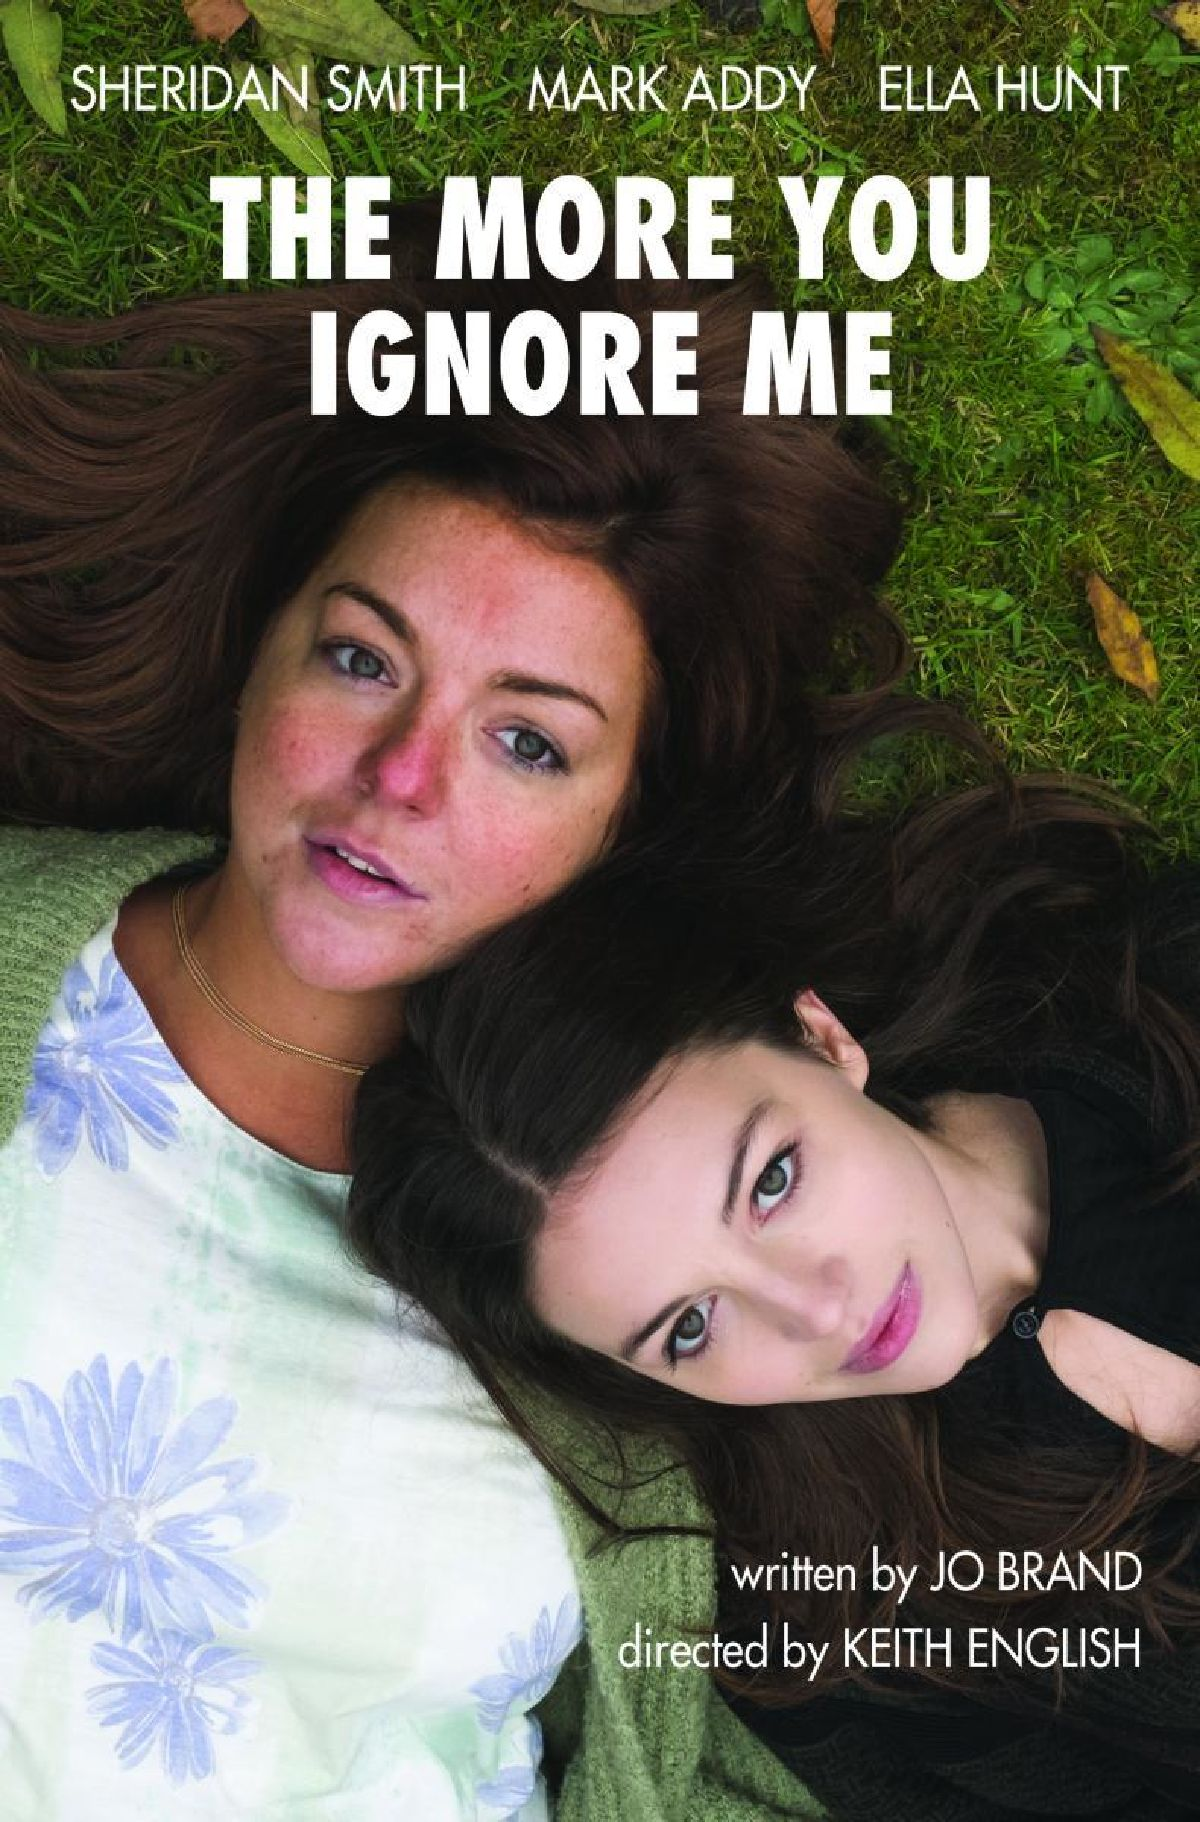 'The More You Ignore Me' movie poster